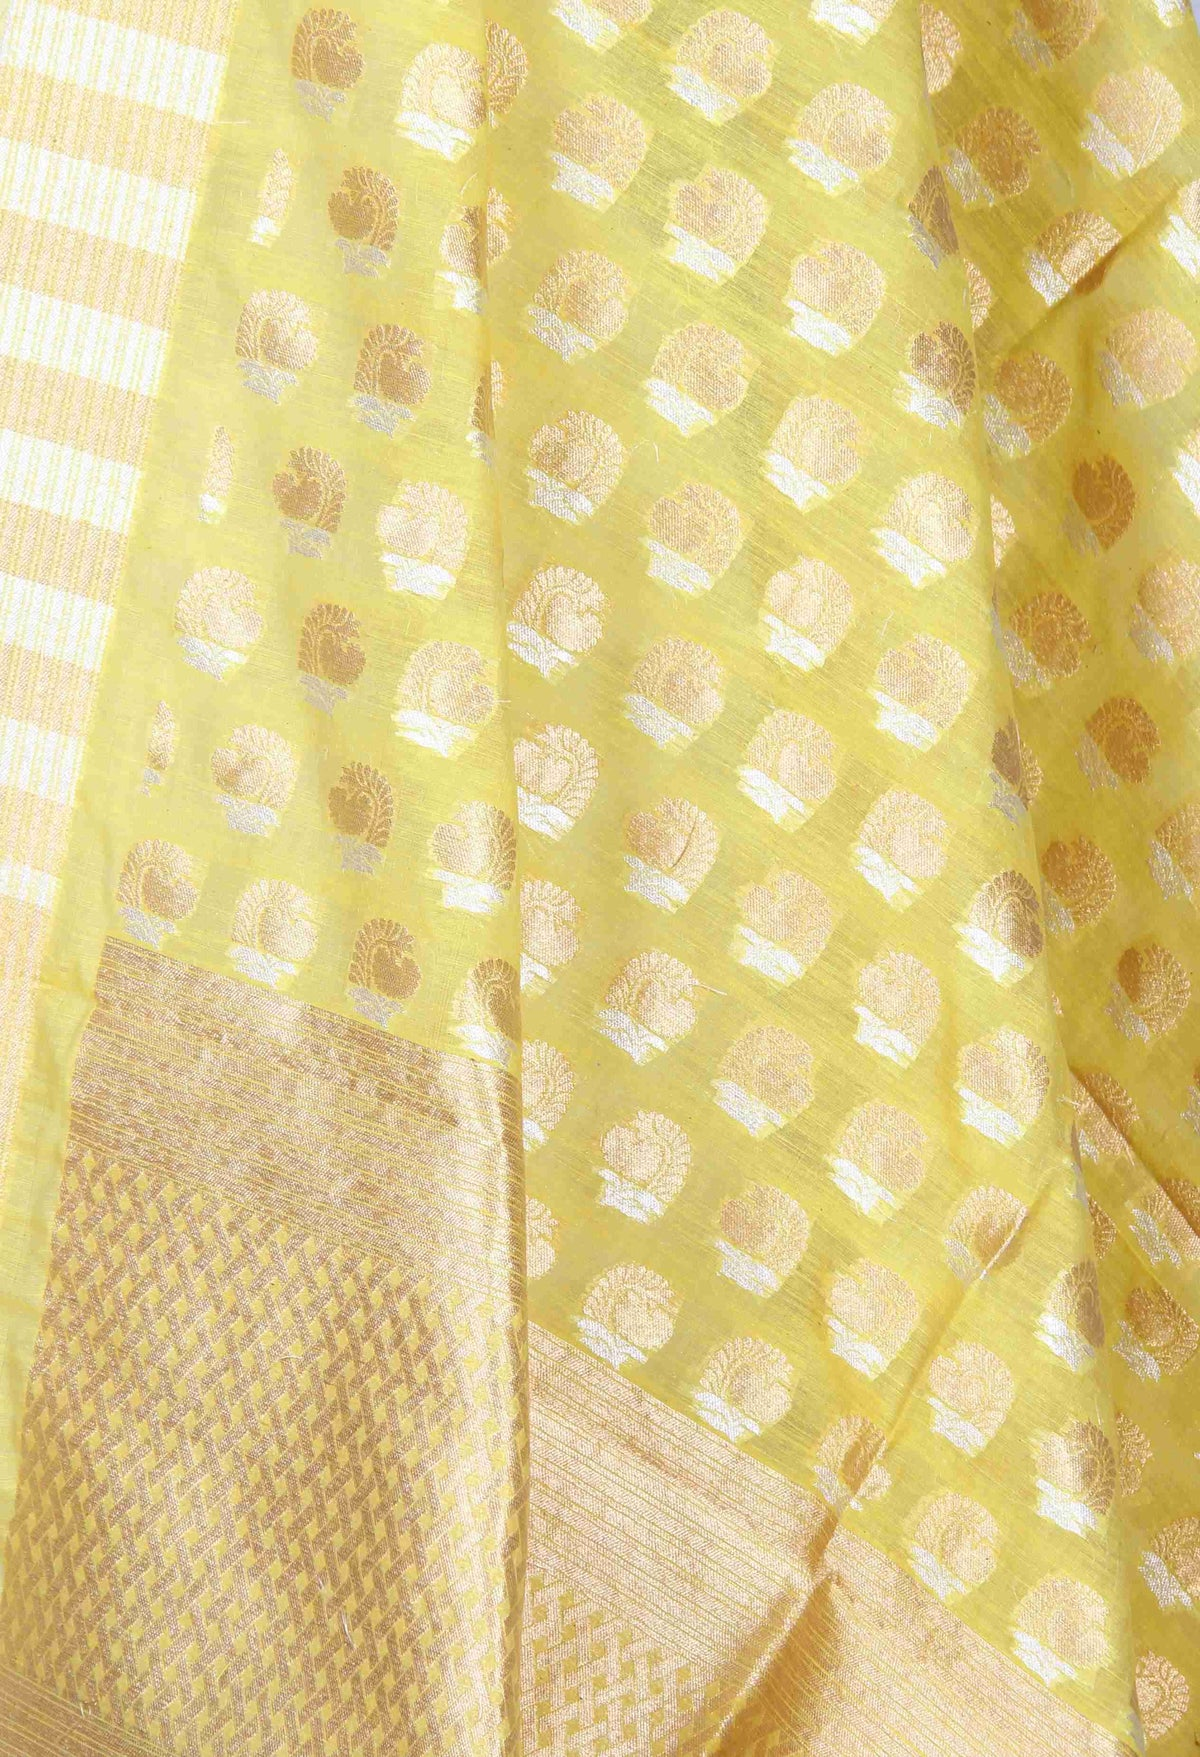 Yellow Silk Cotton Banarasi Dupatta with sona rupa stylized motifs (2) Close up